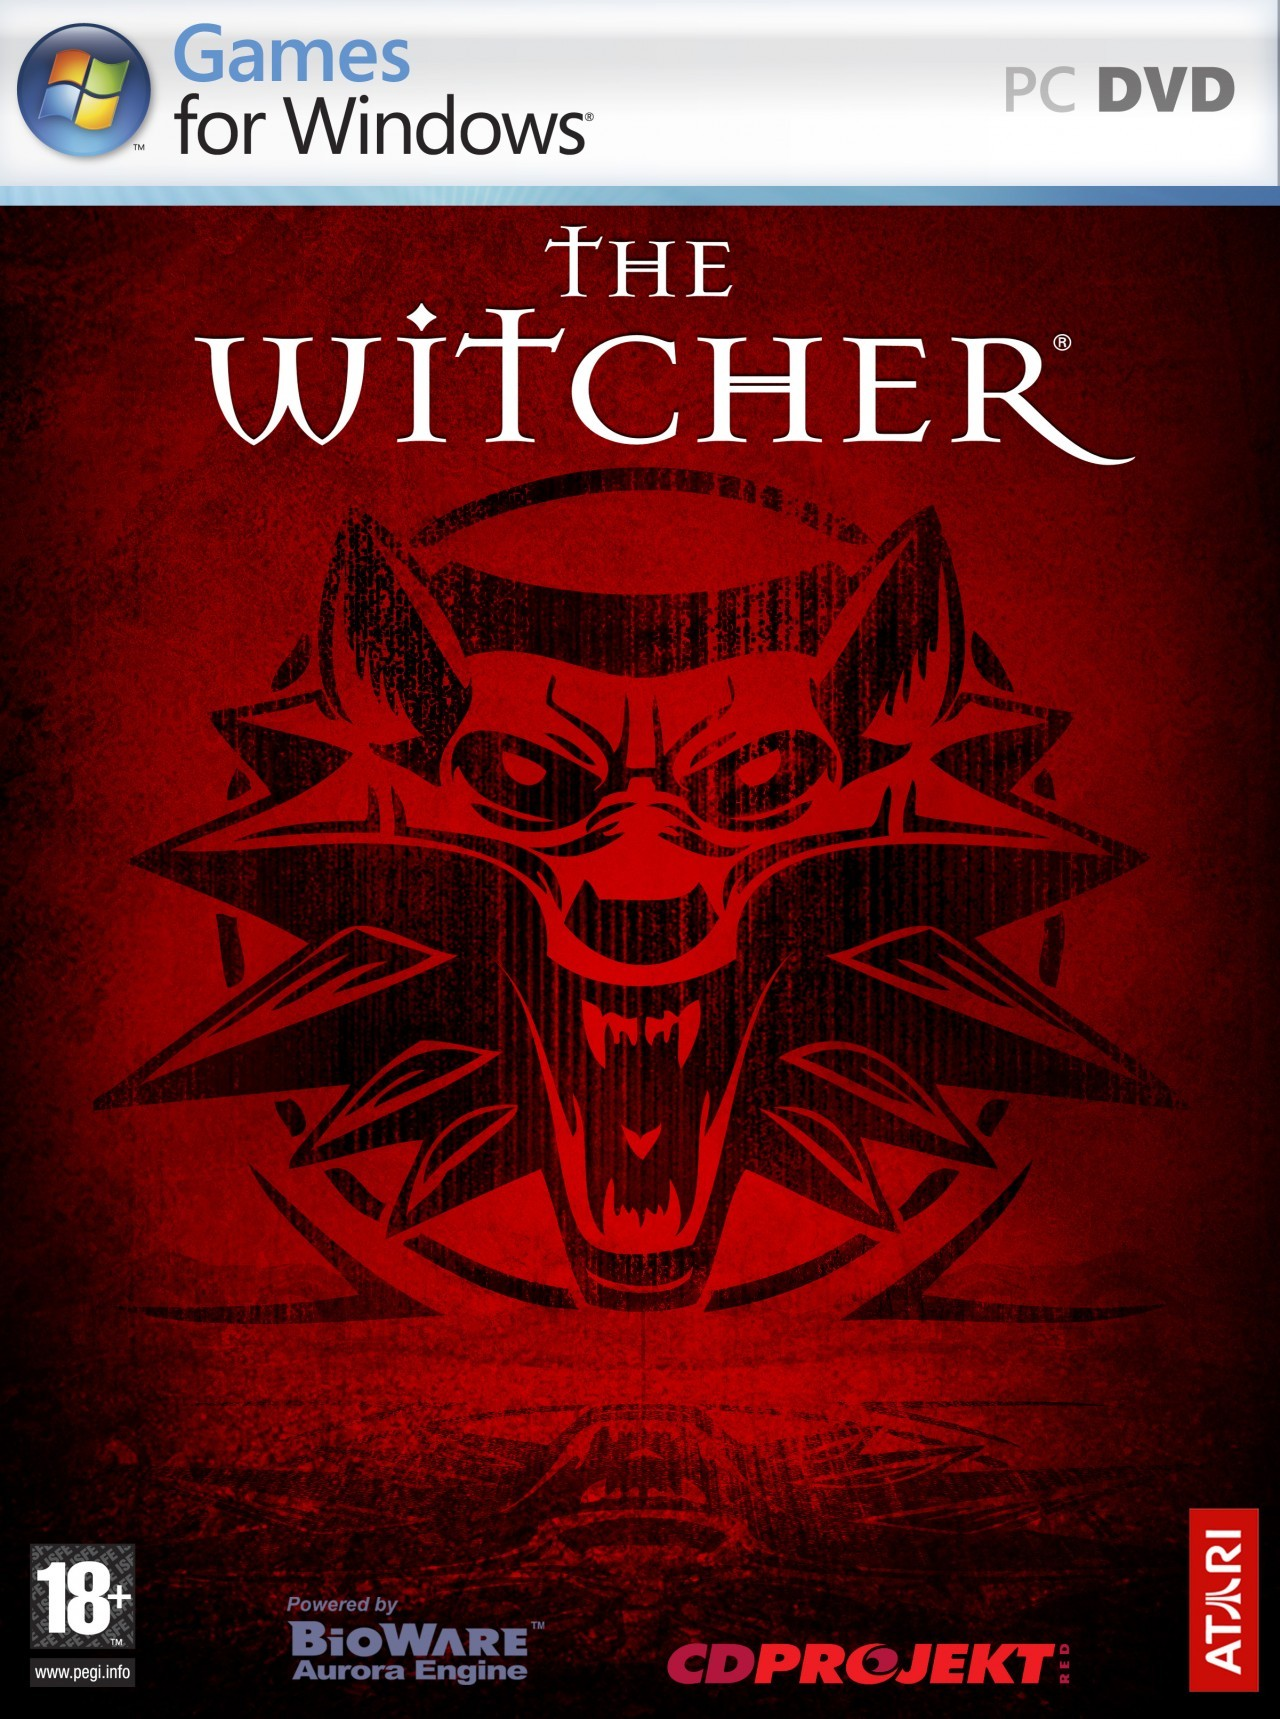 Witcher game box